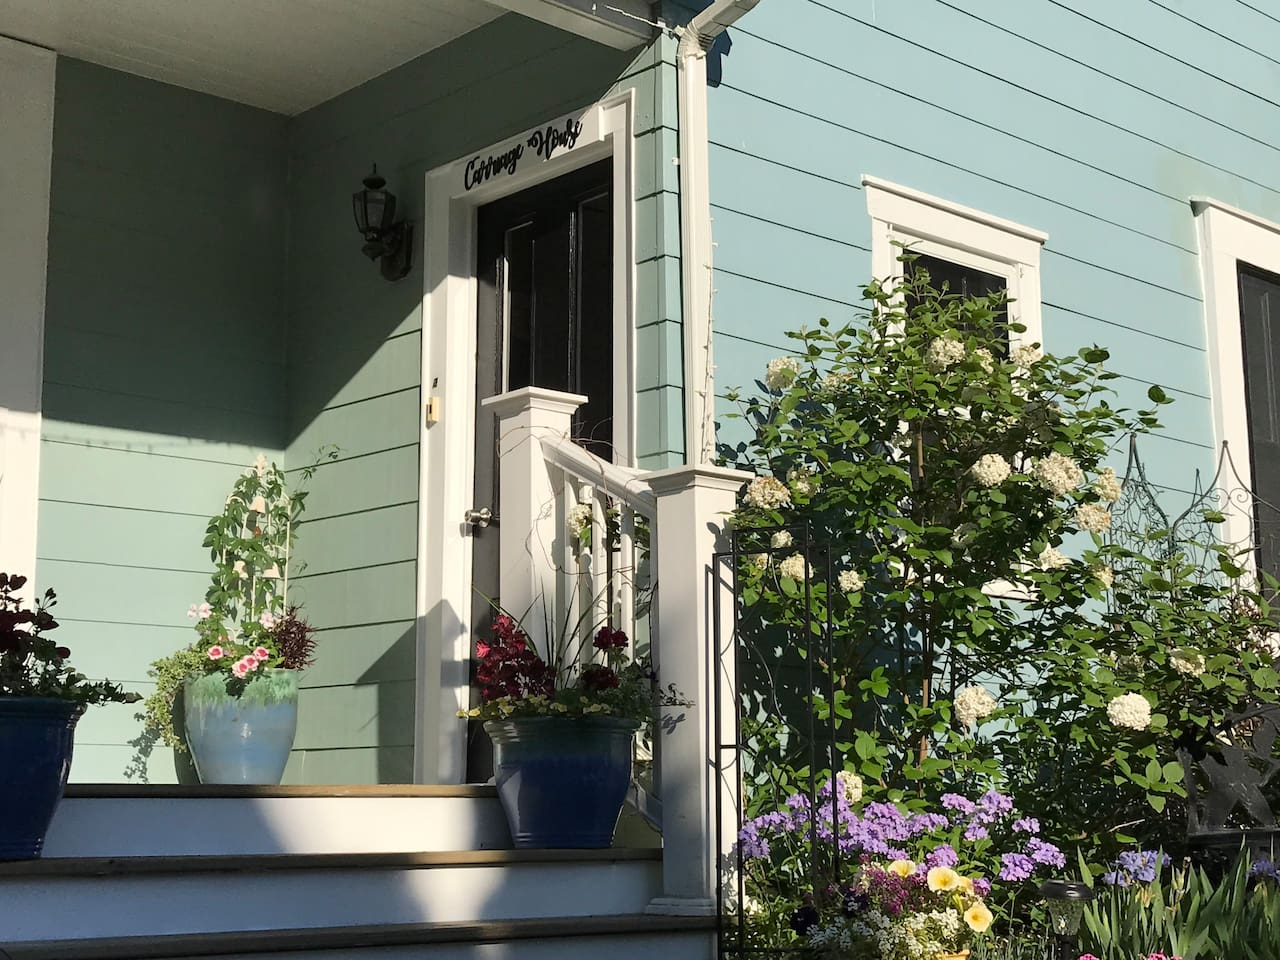 Carriage House private entrance. Just a short walk to all the shops and restaurants on Maine Street and two block to Bowdoin College. We are in a quiet neighborhood in the heart of the historic downtown district.